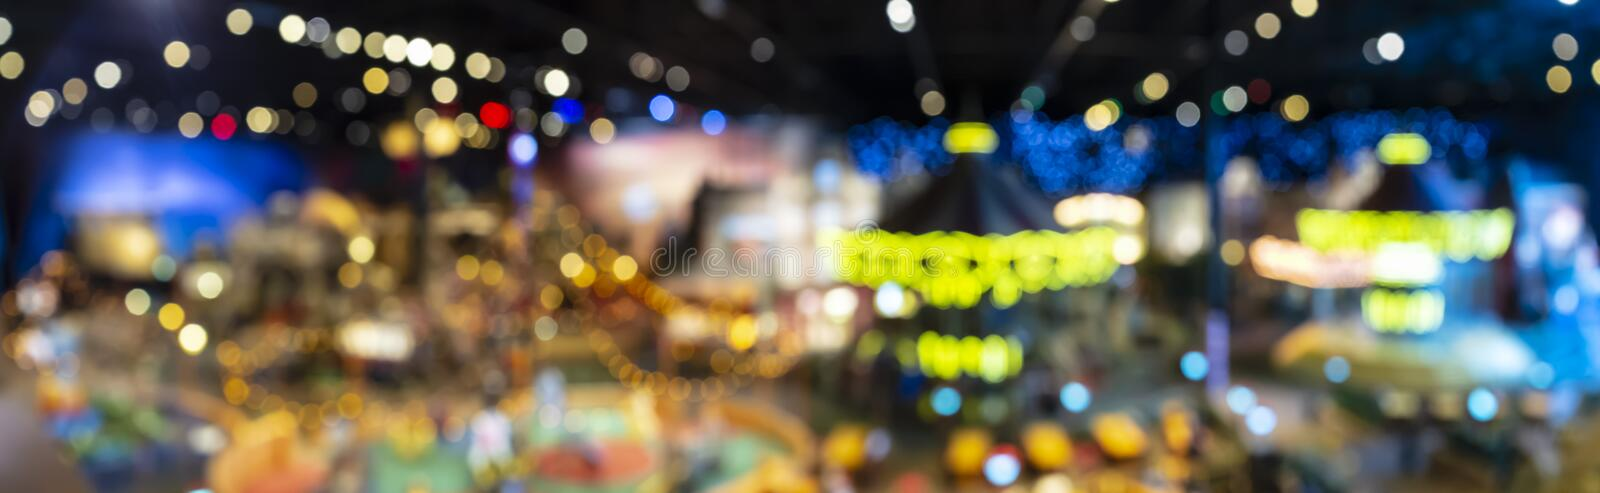 Blurry and defocused multicolored lights of the carousel in the night park. Panorama royalty free stock image